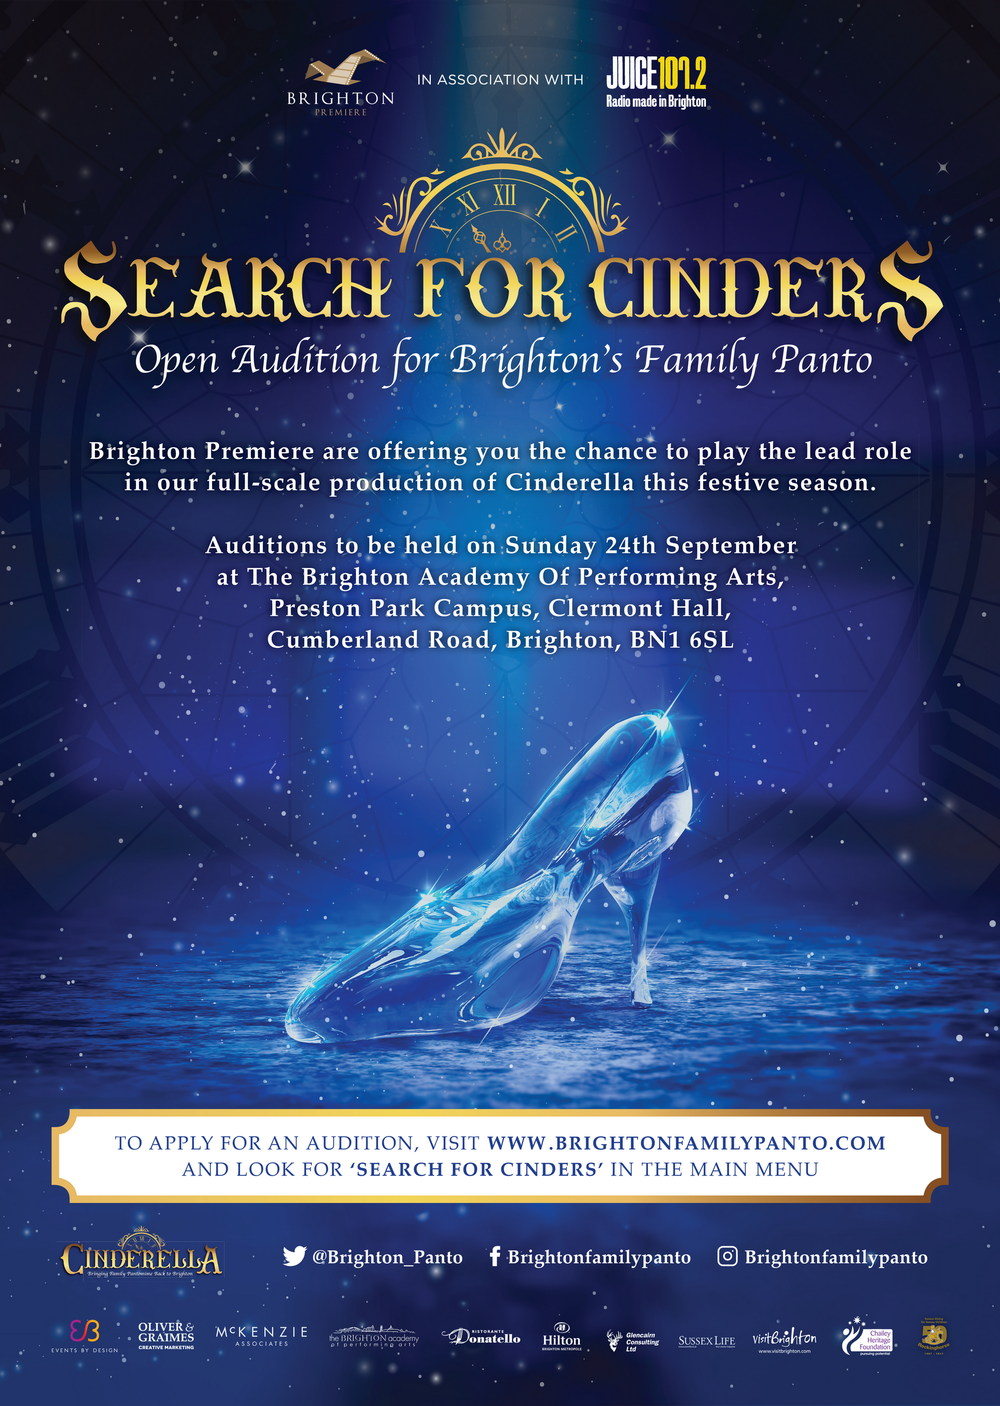 Search for Cinders Poster